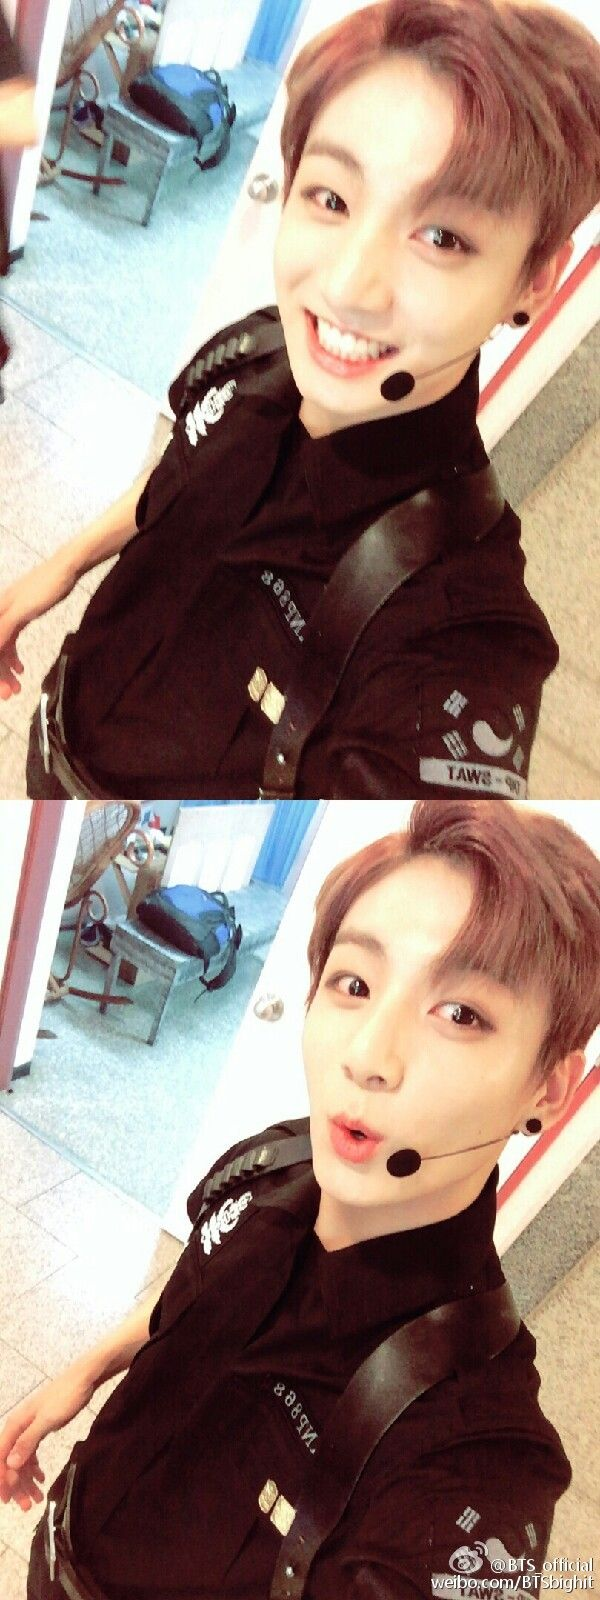 Jungkook tho <3 He is so cute, only if dreams came true :/